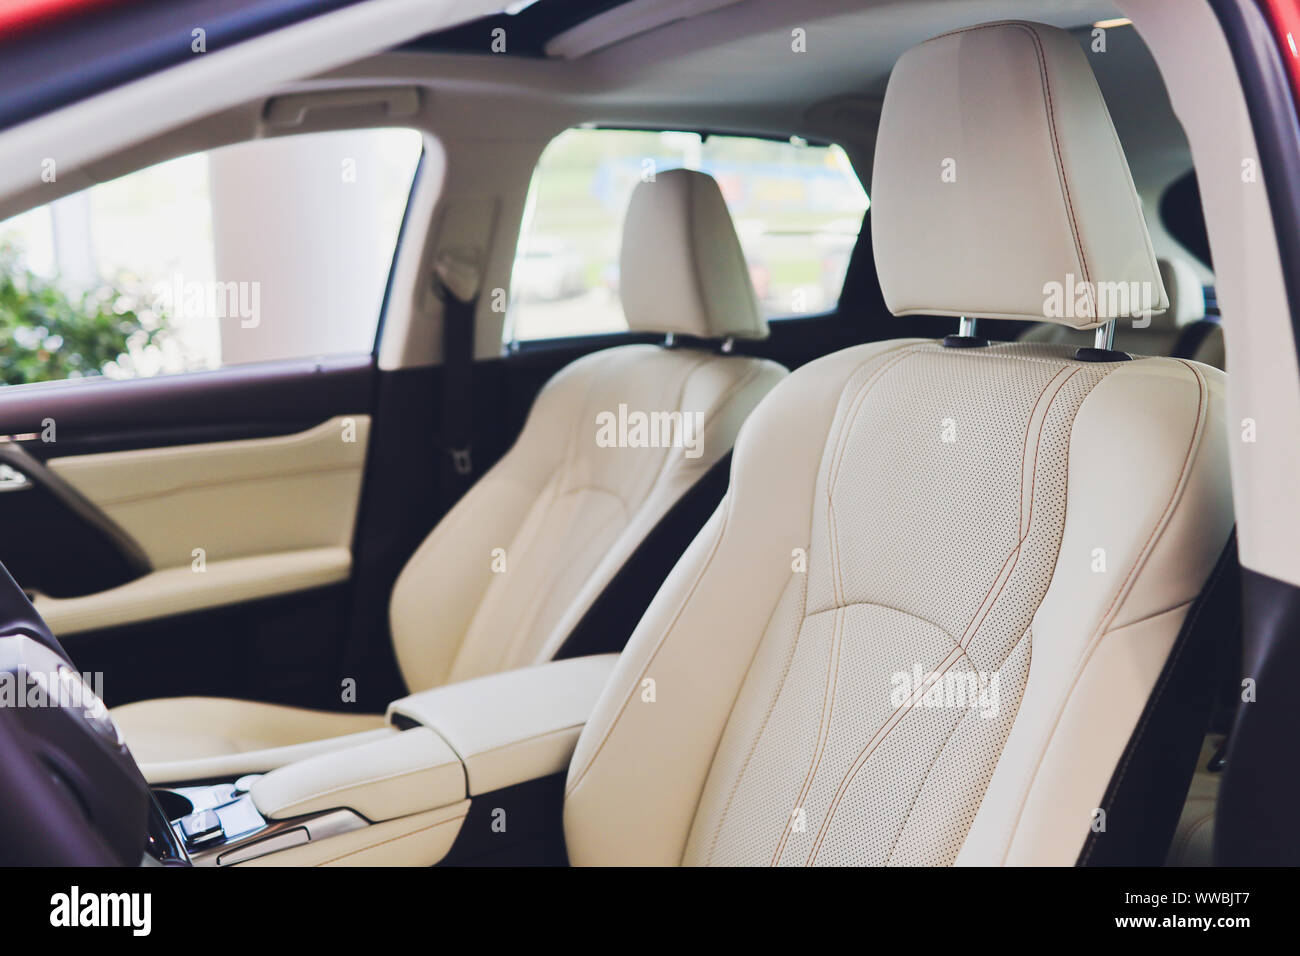 Car Inside Driver Place Interior Of Prestige Modern Car Front Seats With Steering Wheel Dashboard Beige Cockpit With Metal Decoration Panoramic Roo Stock Photo Alamy